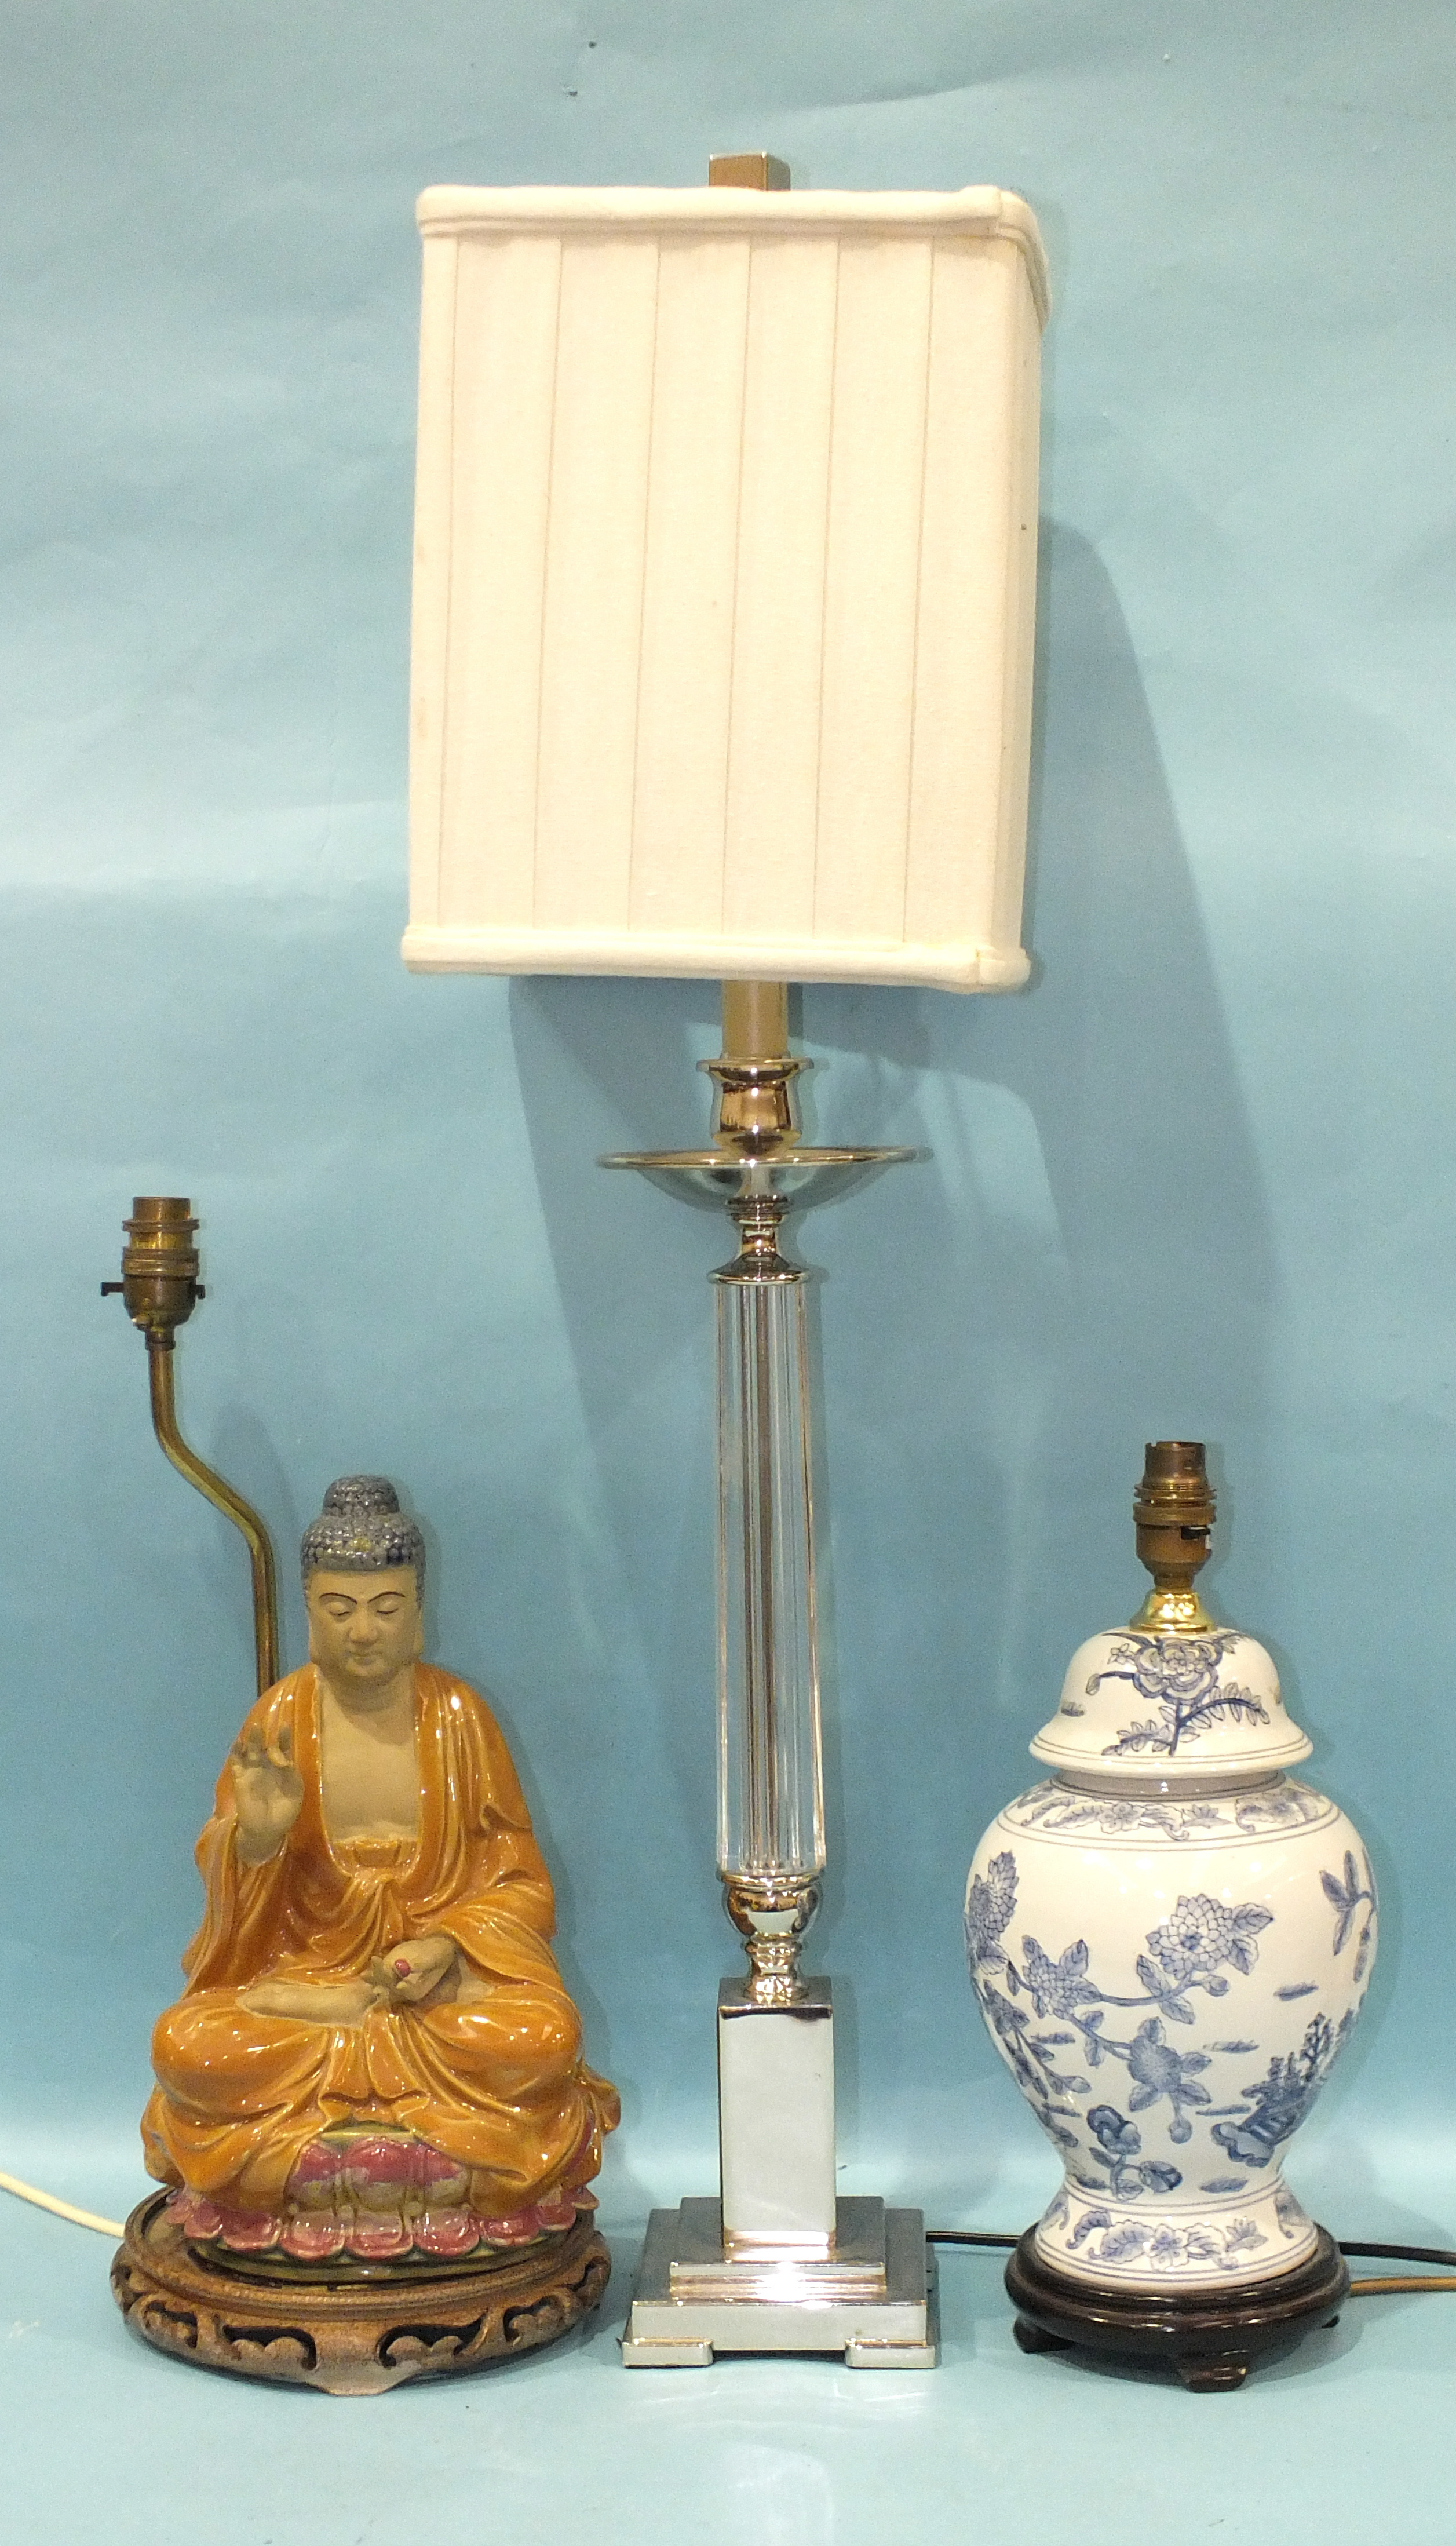 A modern chrome-plated and plastic column table lamp, another ceramic lamp in the form of a seated